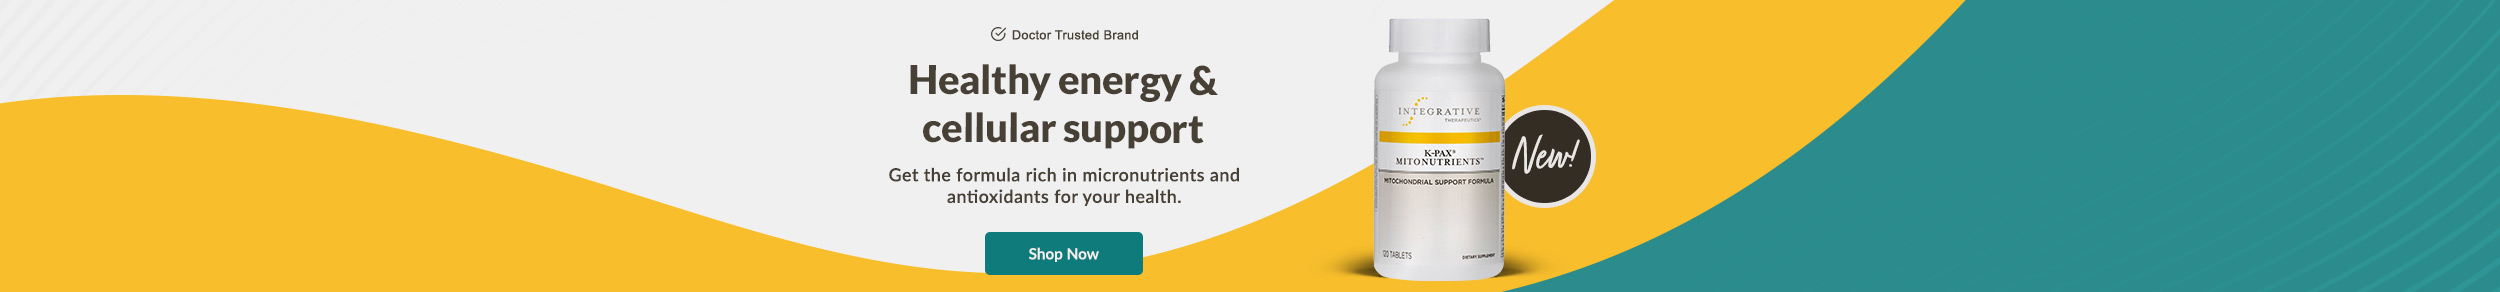 Doctor Trusted Brand: K-Pax Mitonutrients by Integrative Therapeutics - Healthy energy & cellular support - Get the formula rich in micronutrients and antioxidants for your health. SHOP NOW!